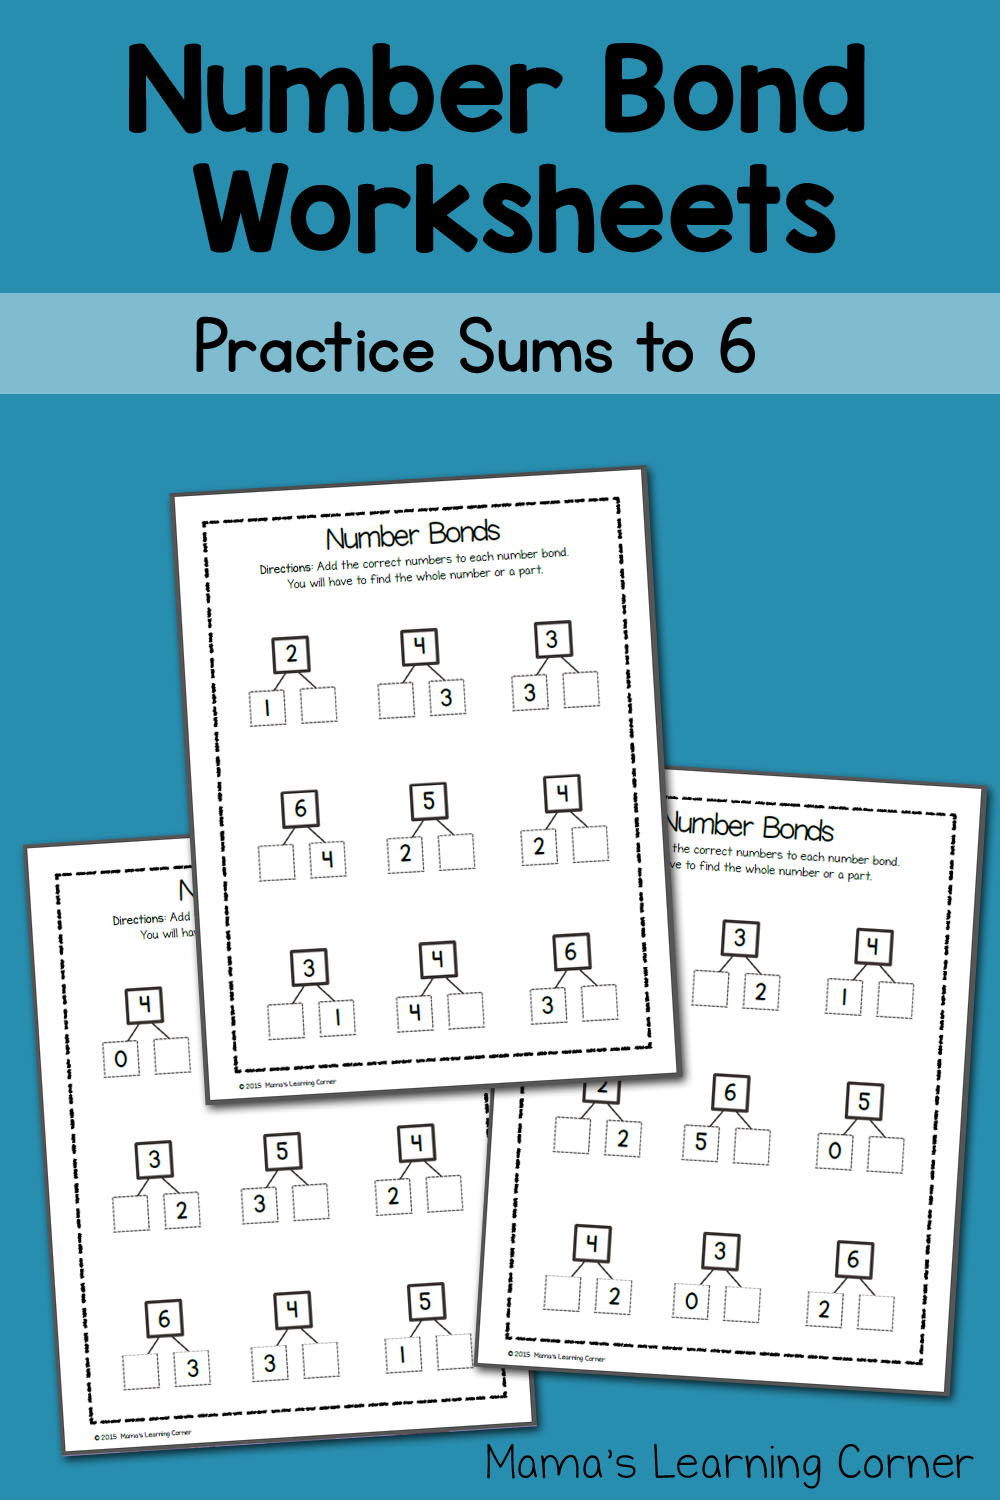 hight resolution of Number Bond Worksheets: Sums to 6 - Mamas Learning Corner